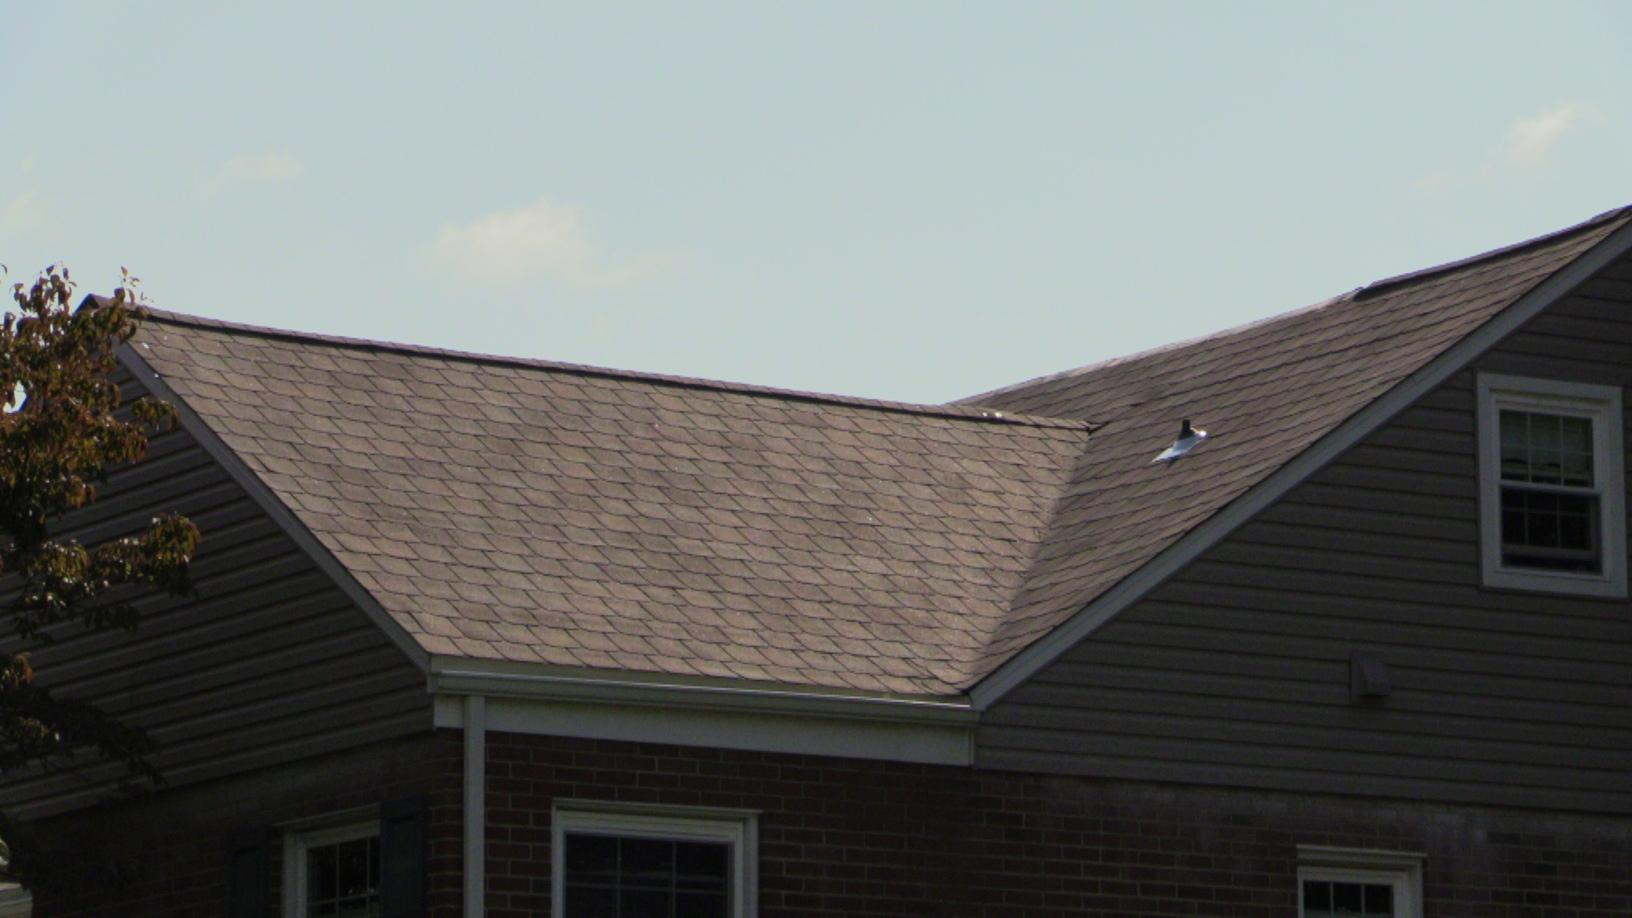 Another Closer View Of This Wonderfully Executed Shingle Installation